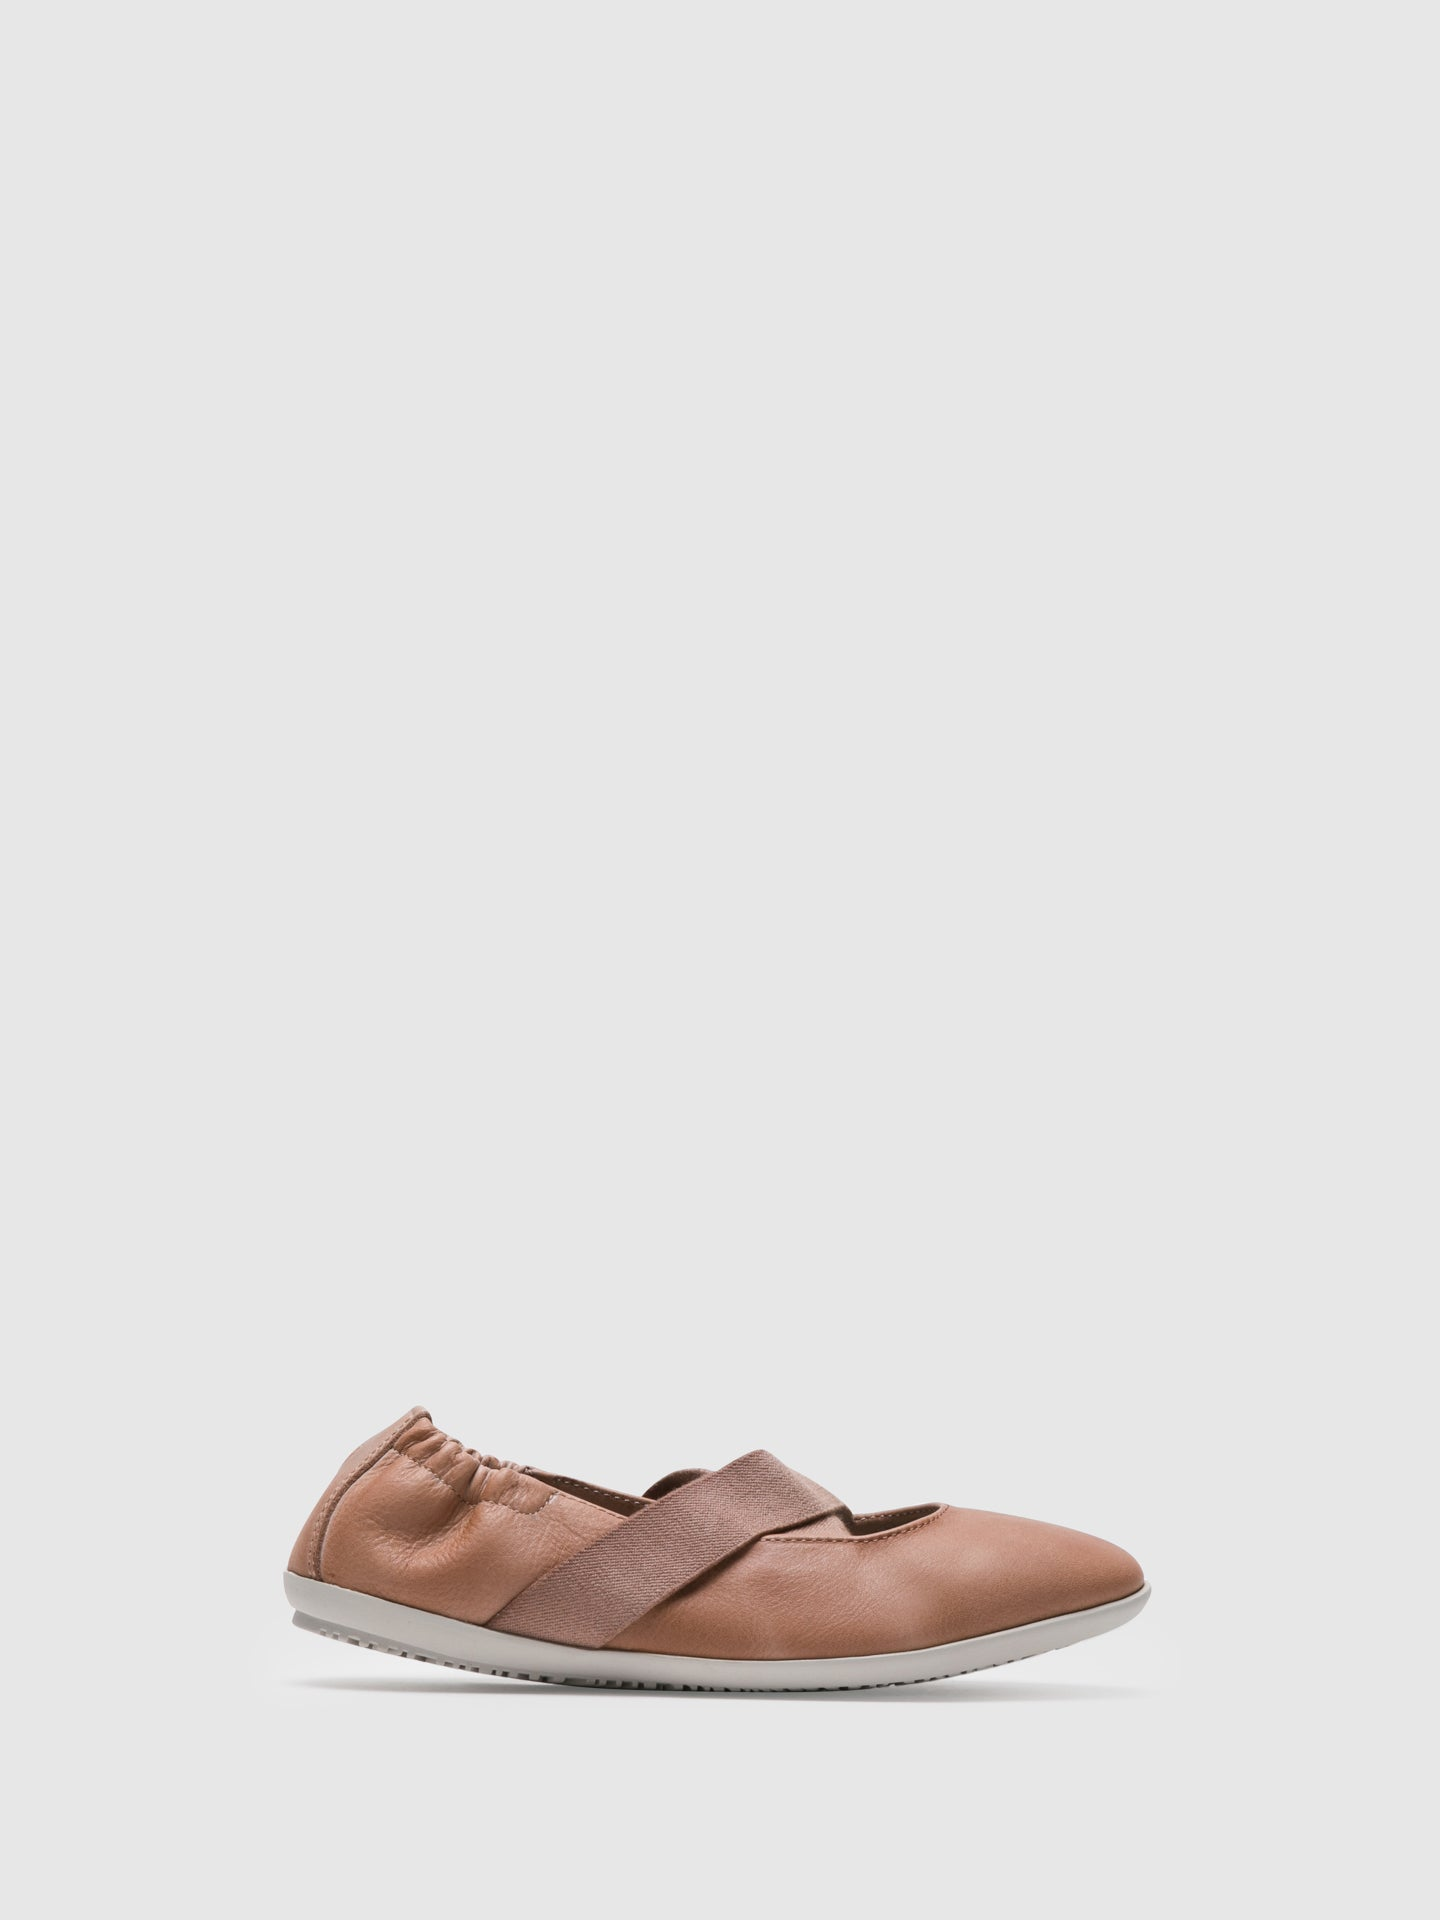 SOFTINOS DarkSalmon Elasticated Ballerinas